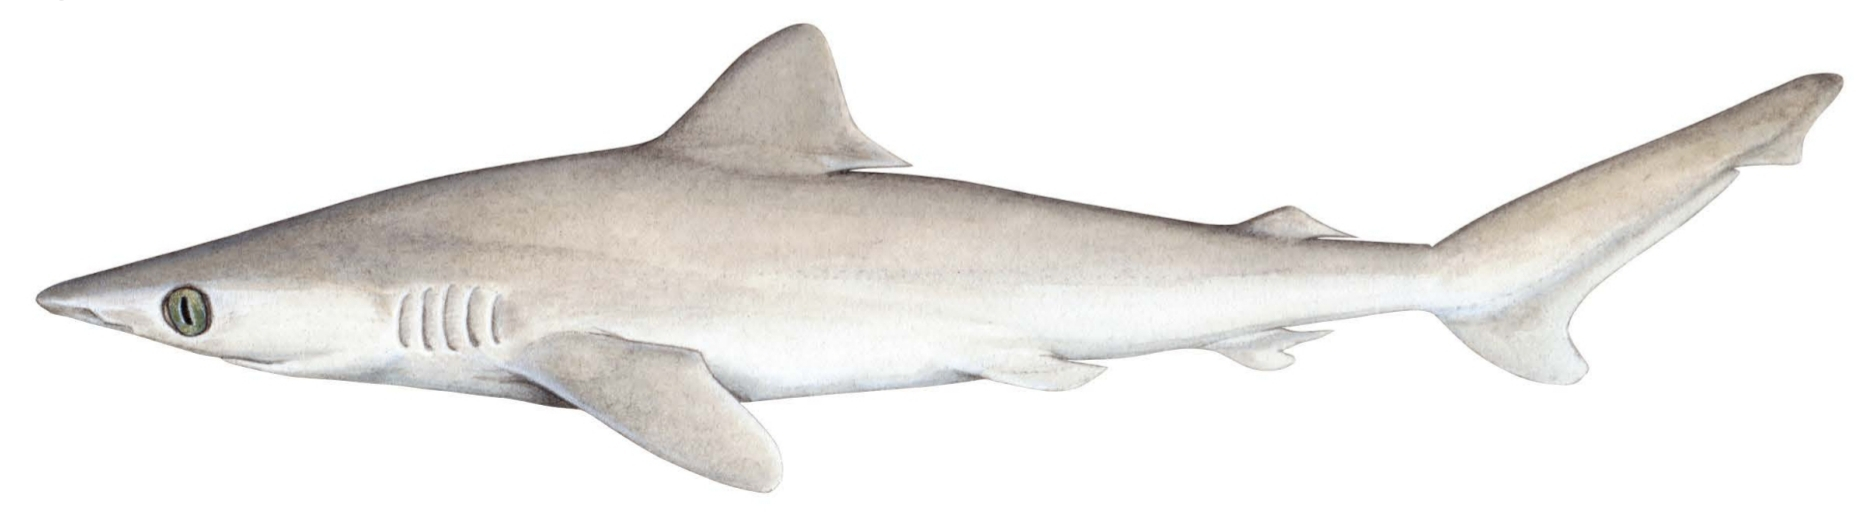 An artist's impression of what the shark may have looked like, based on the earlier picture.